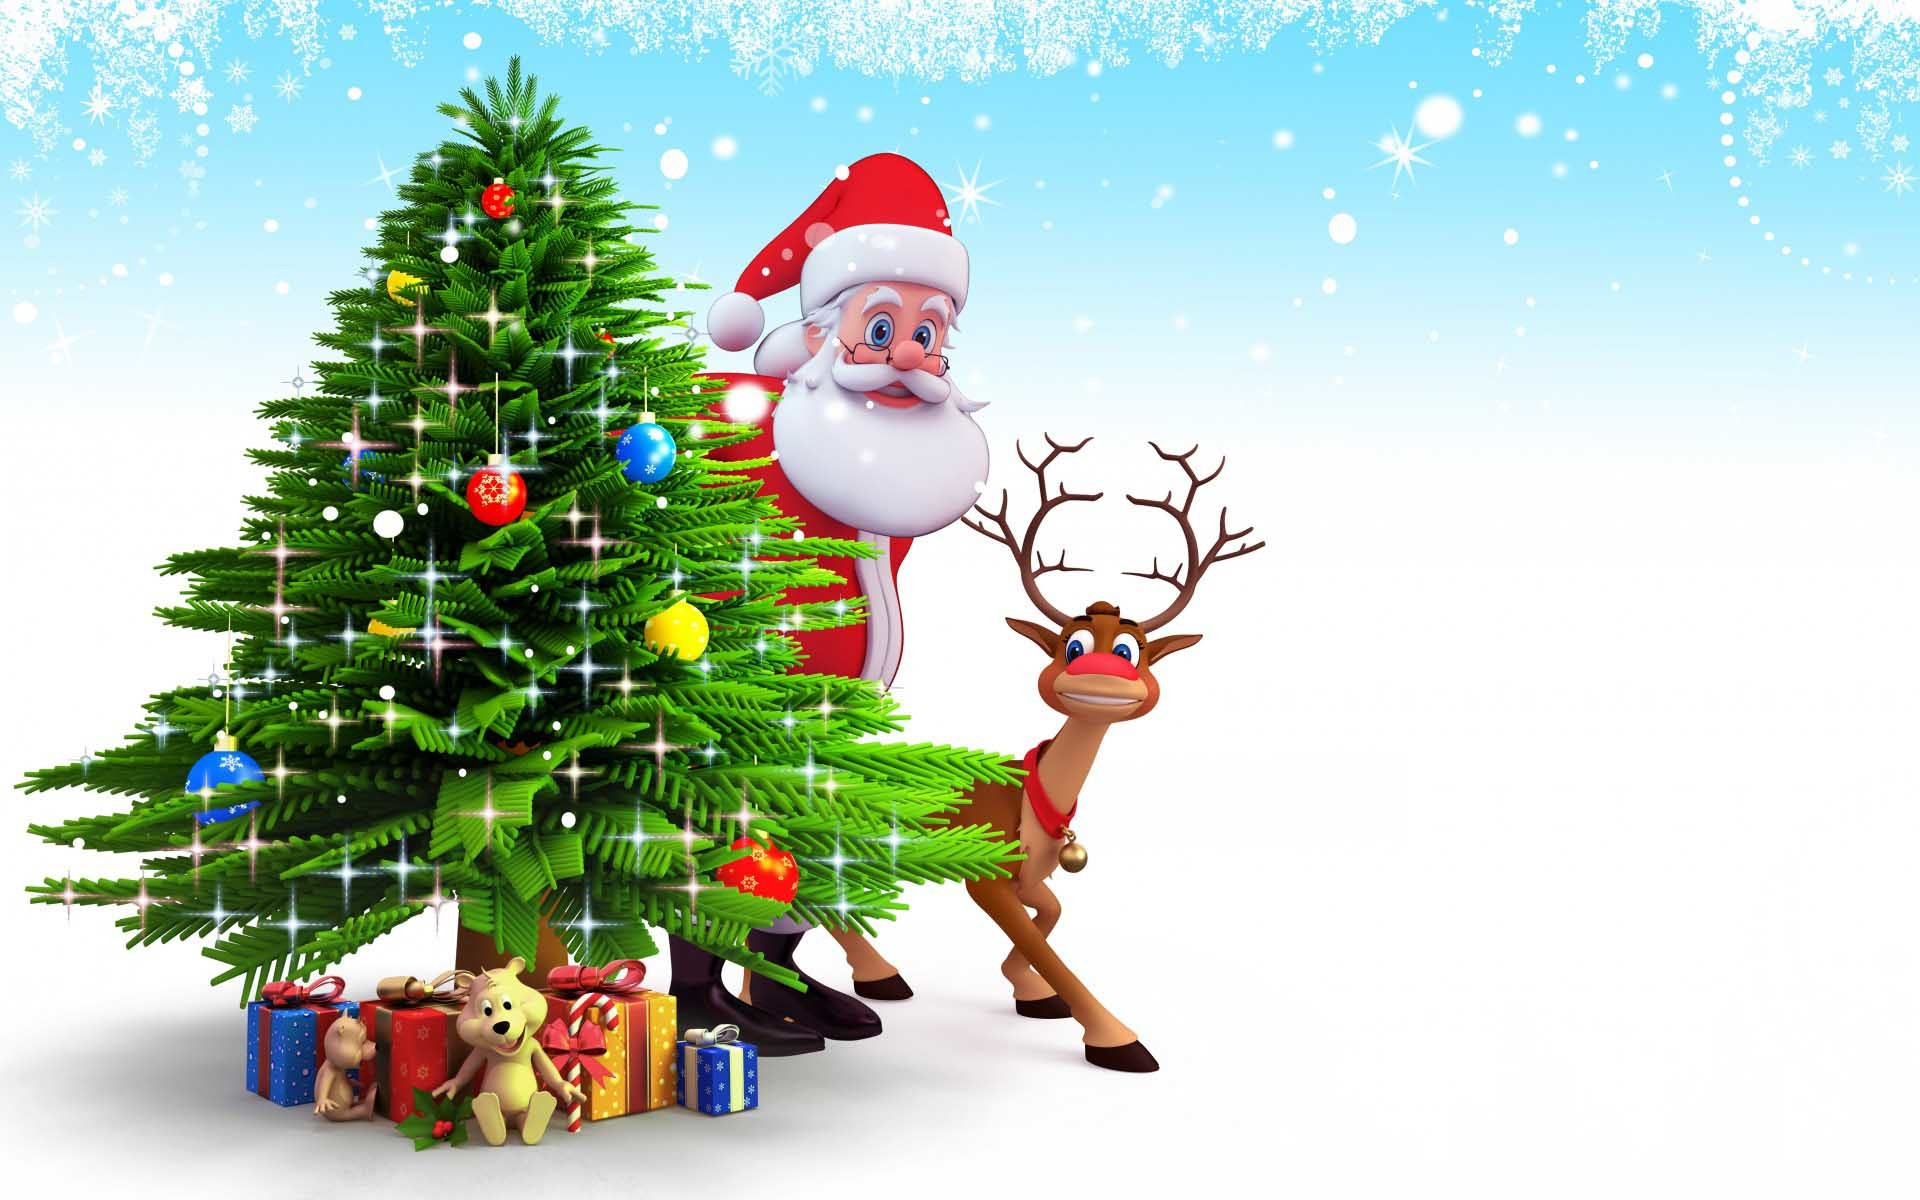 Xmas Stuff For 3d Christmas Wallpaper Backgrounds